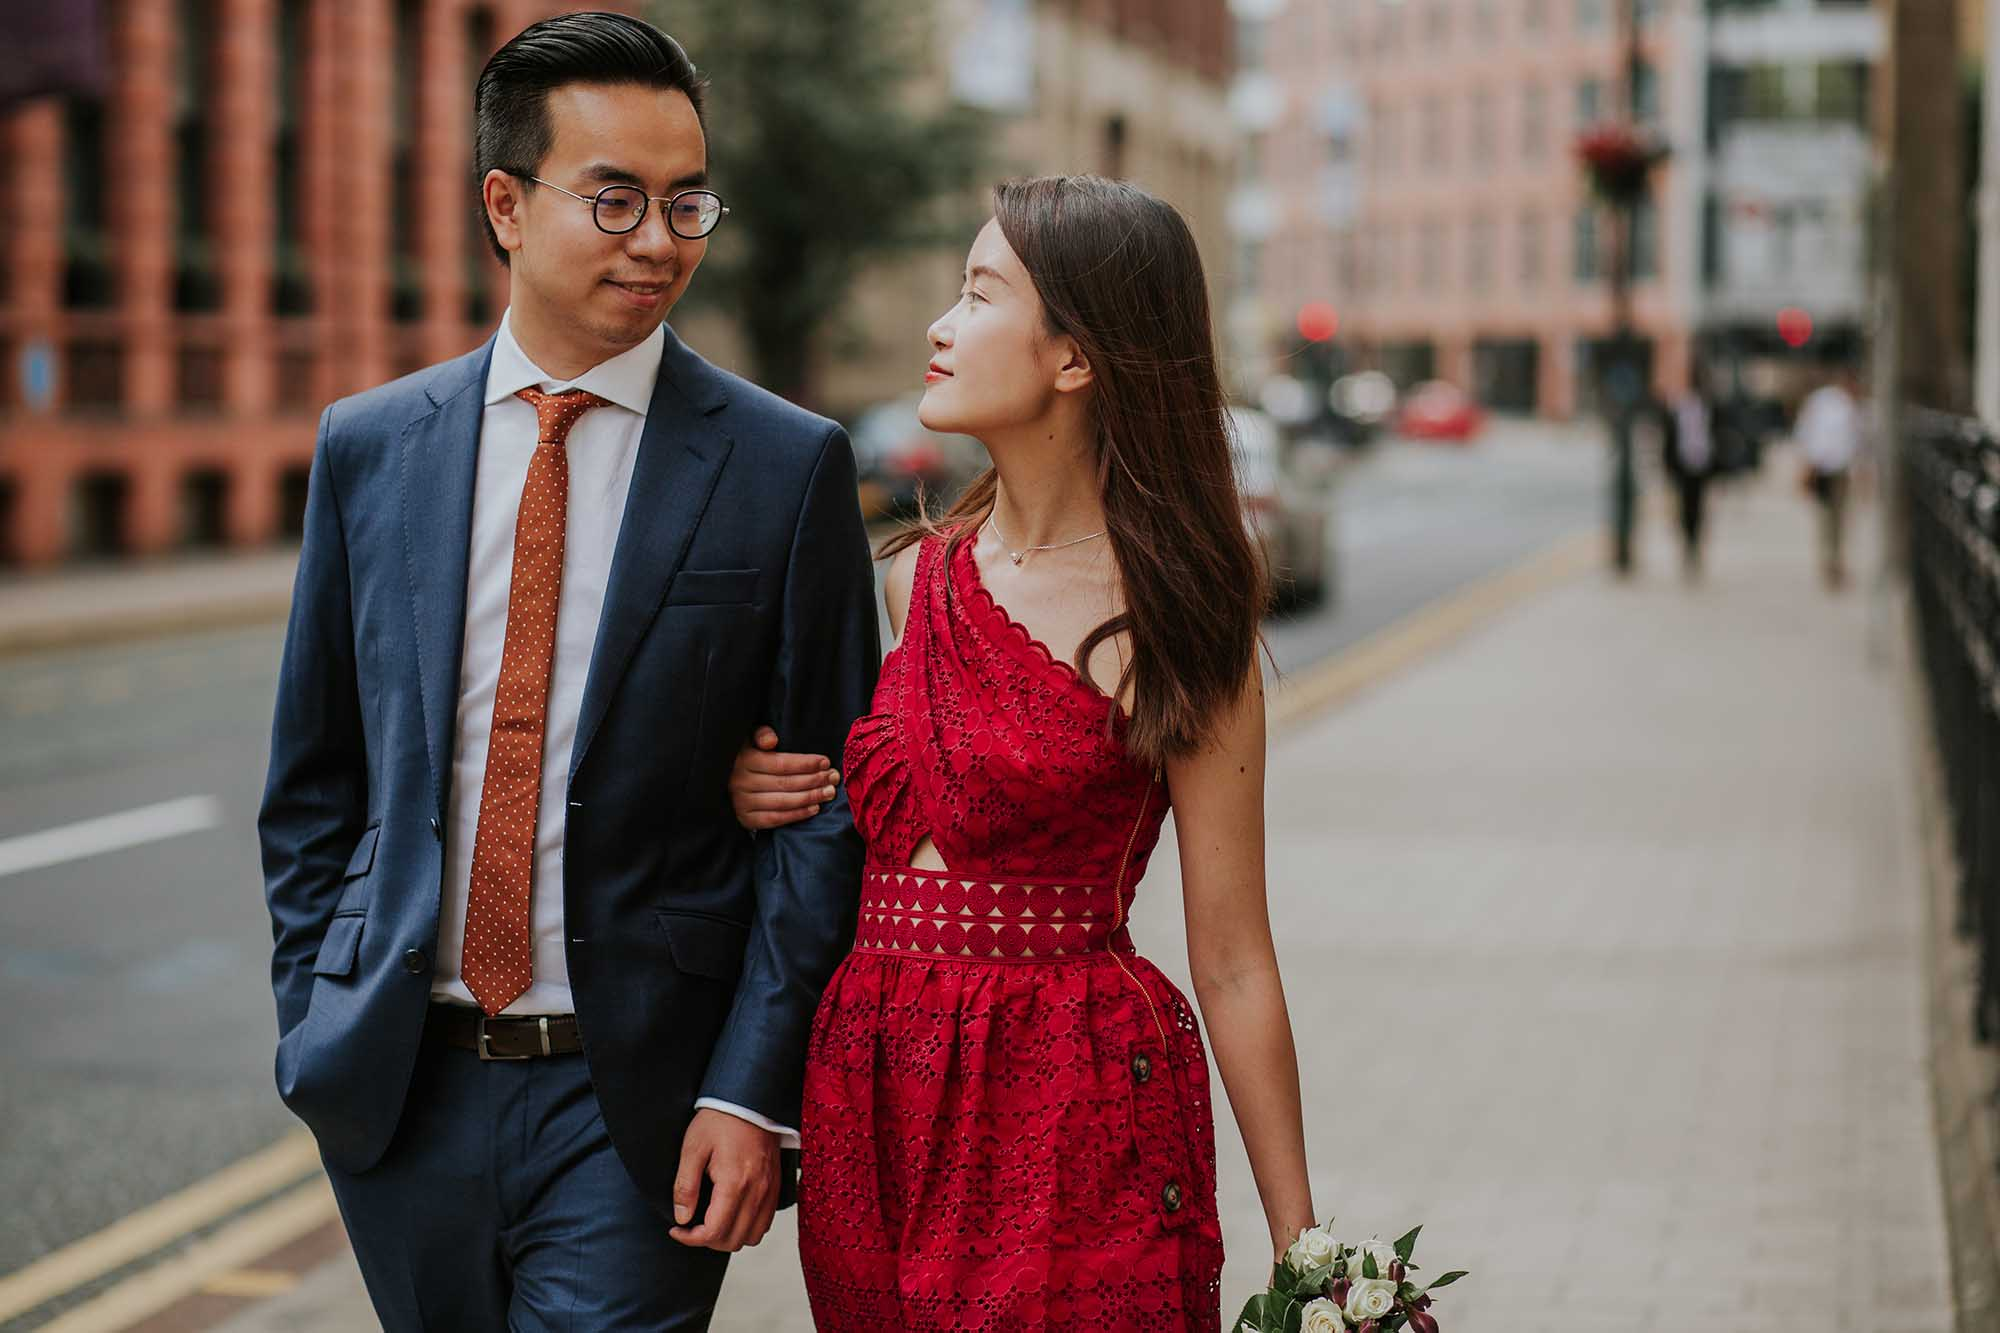 Leeds city engagement photos